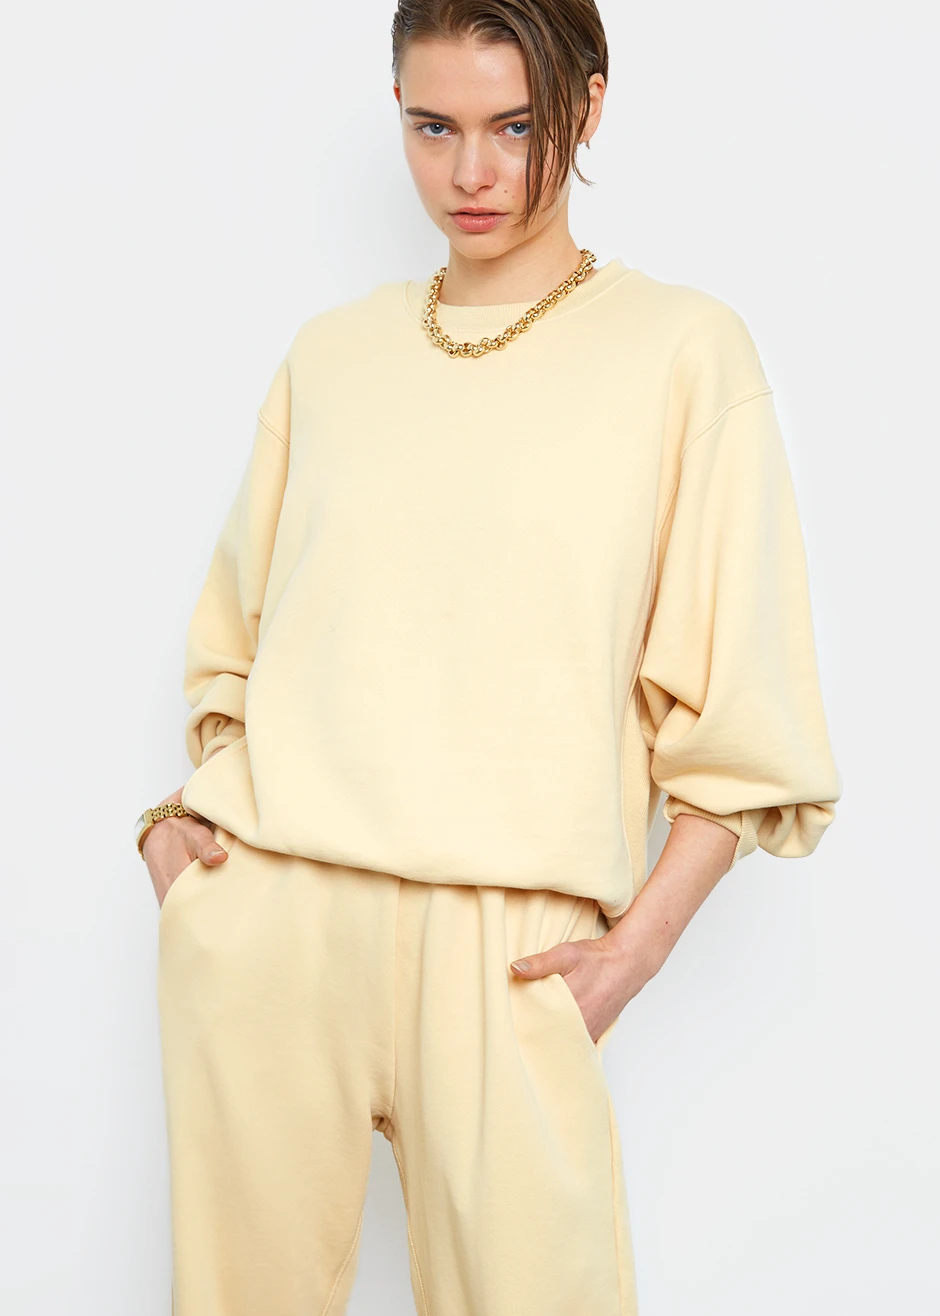 Frankie-Shop-Pale-Yellow-Sweater-Pant-Set